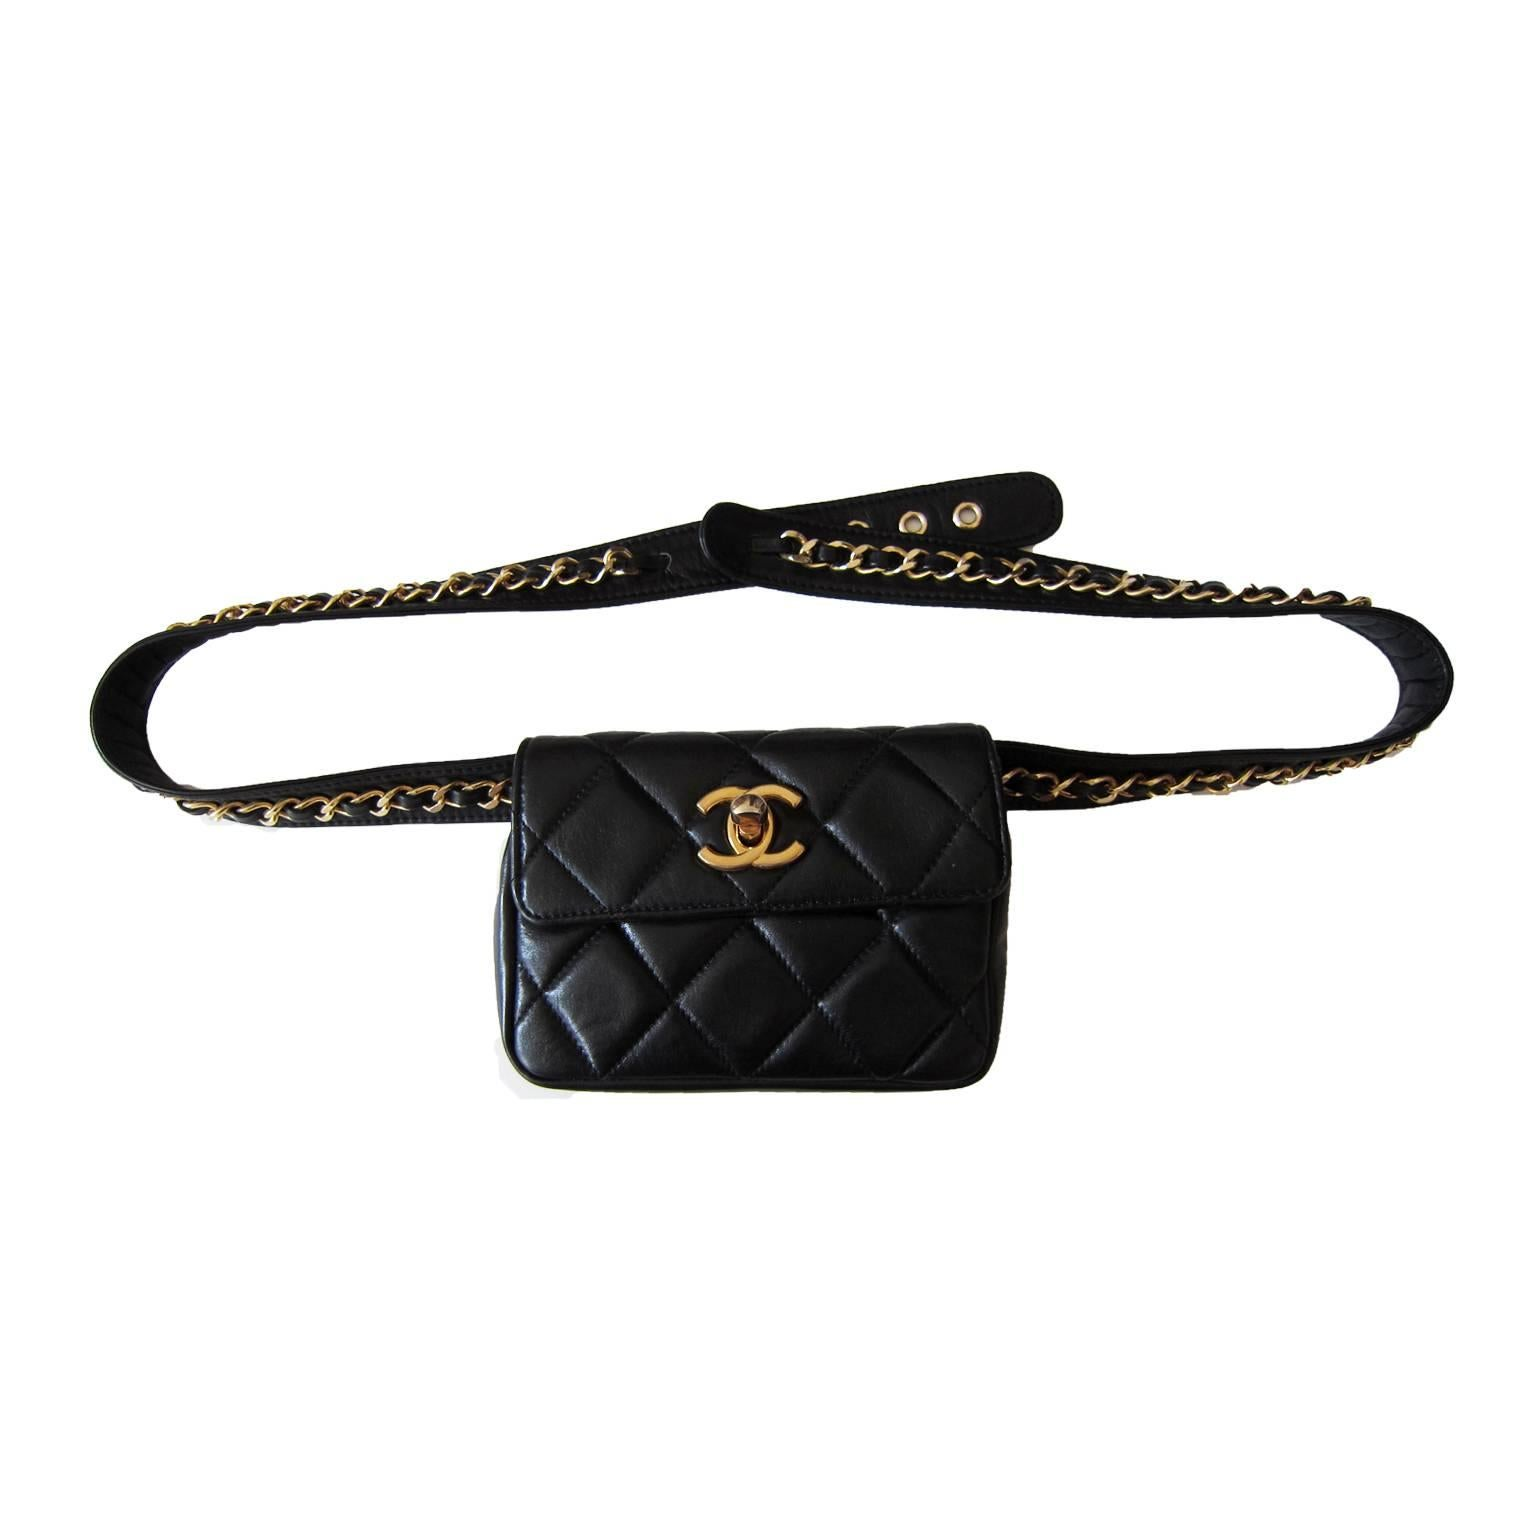 76c43d6820eb Chanel Chain Hook Belt Quilted Waist Bag Black Leather at 1stdibs